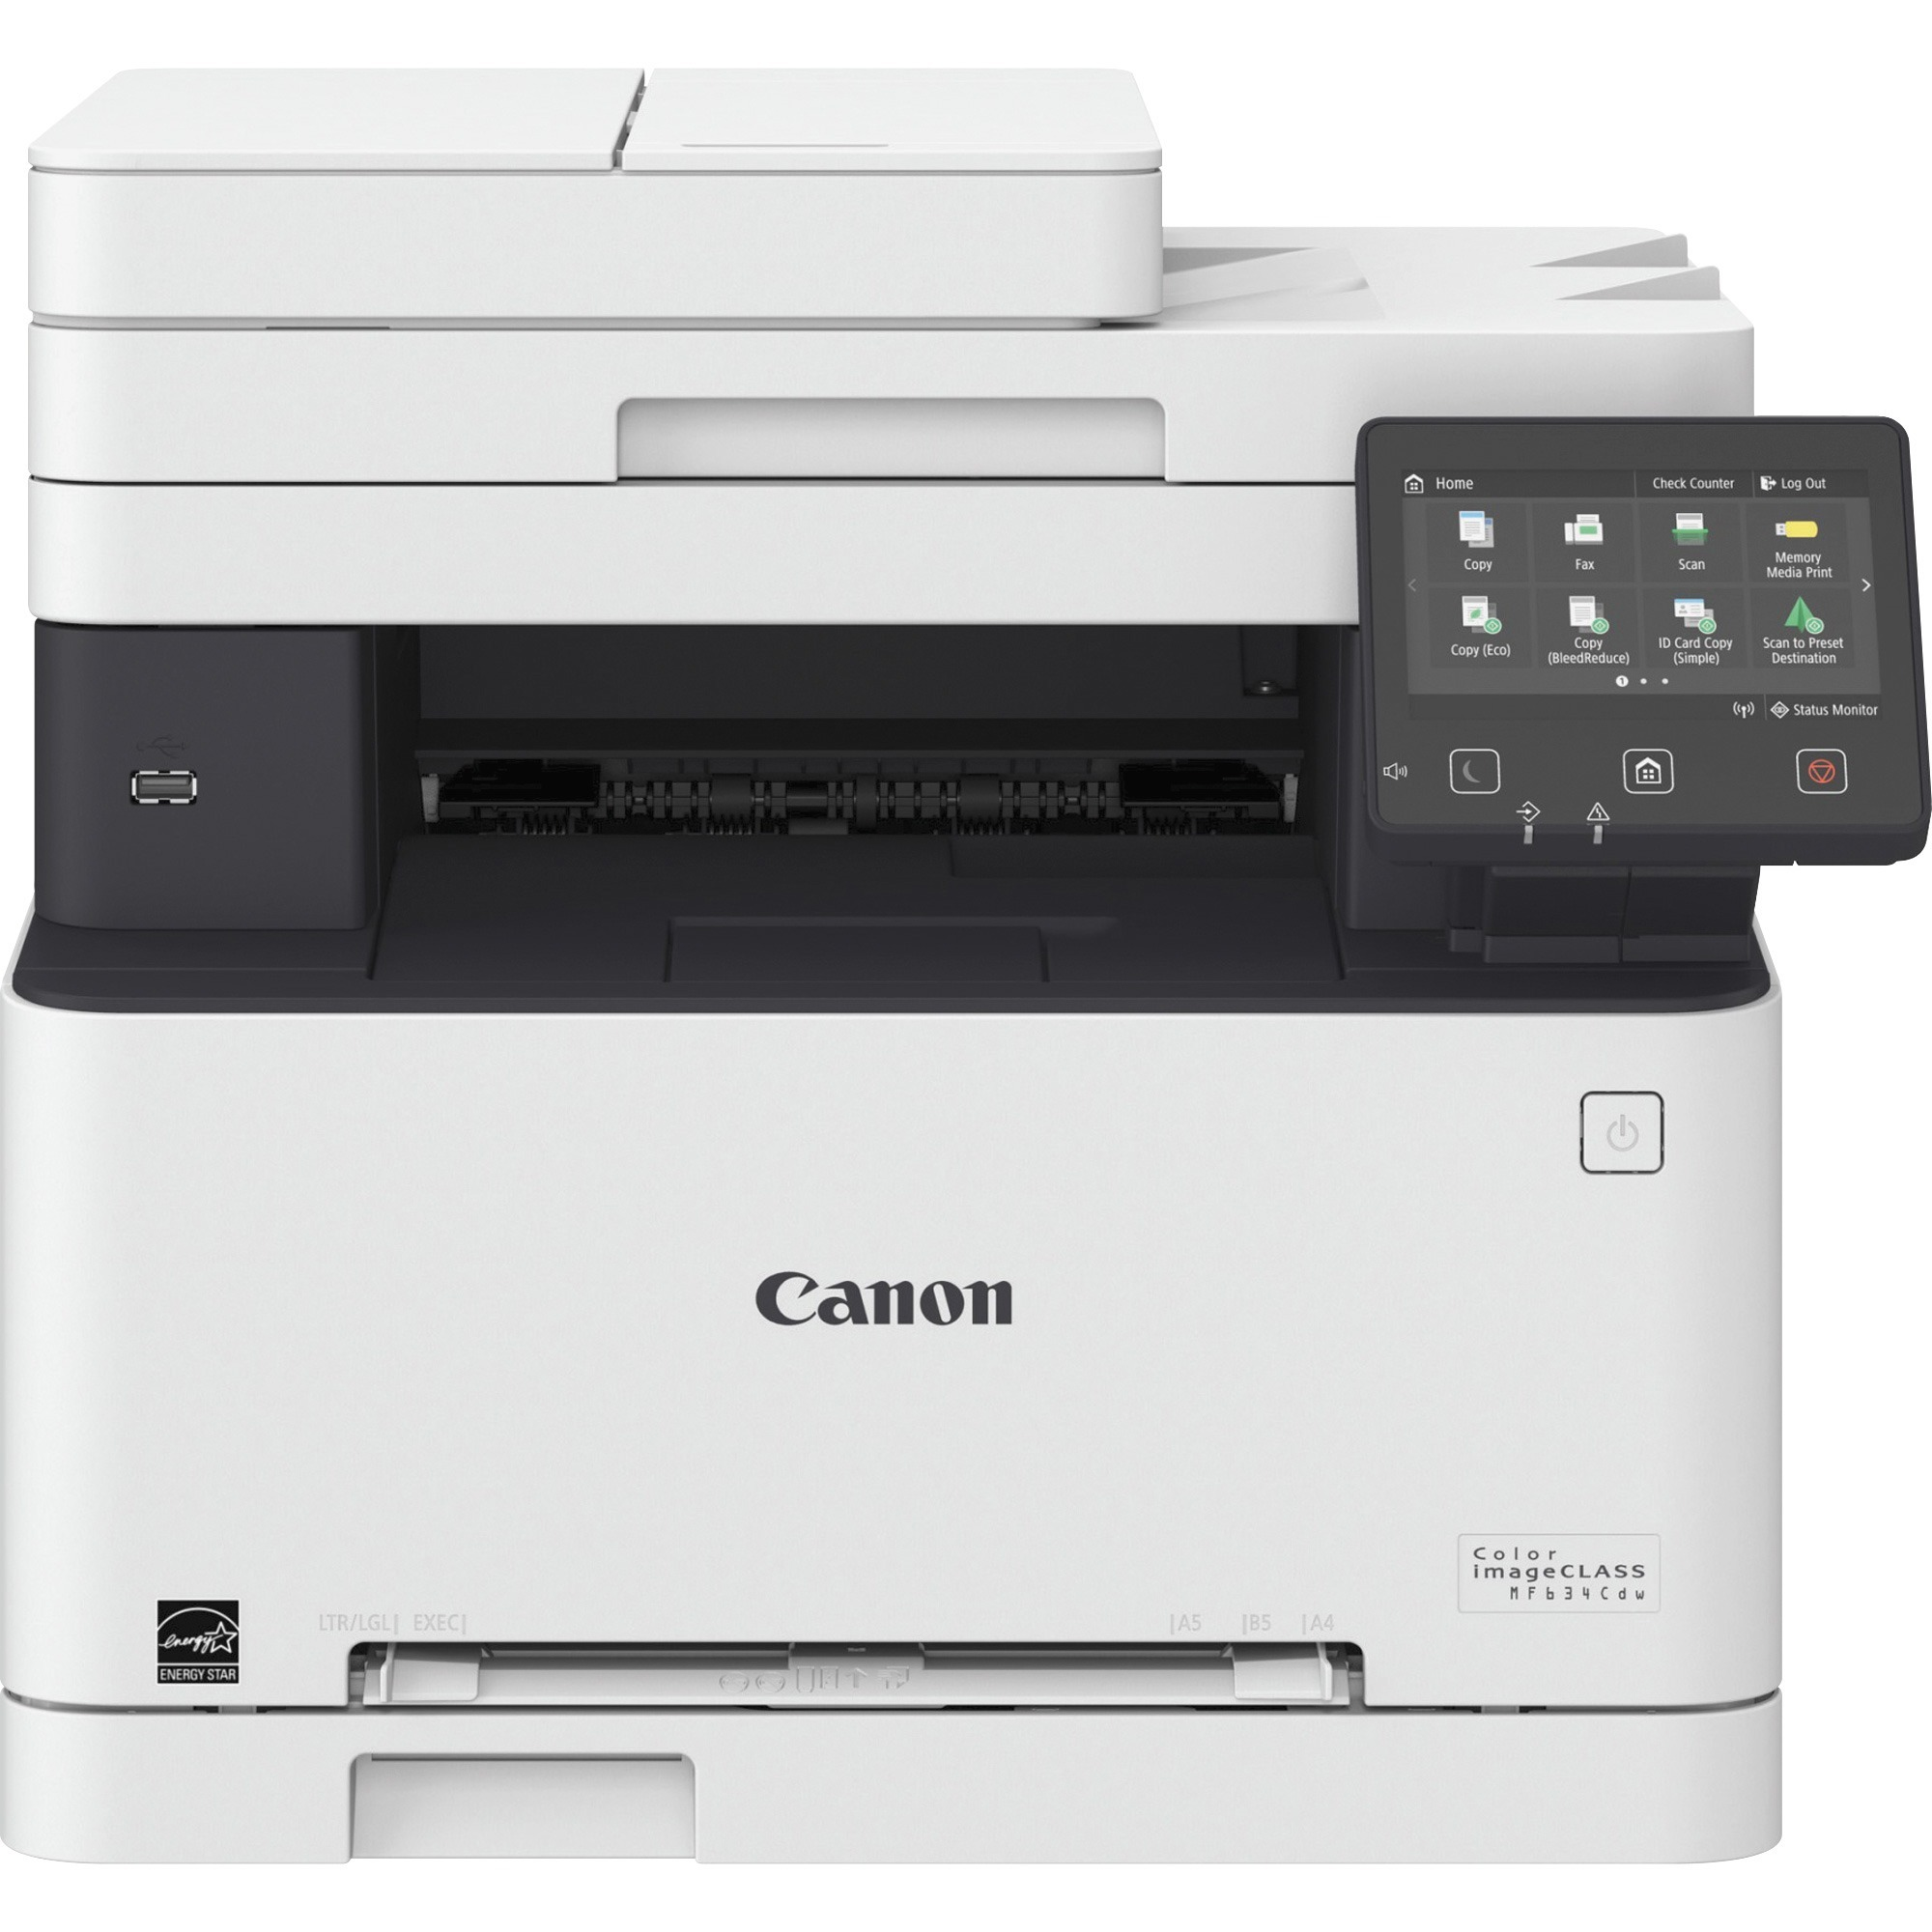 CANON C45 PRINTER DOWNLOAD DRIVER